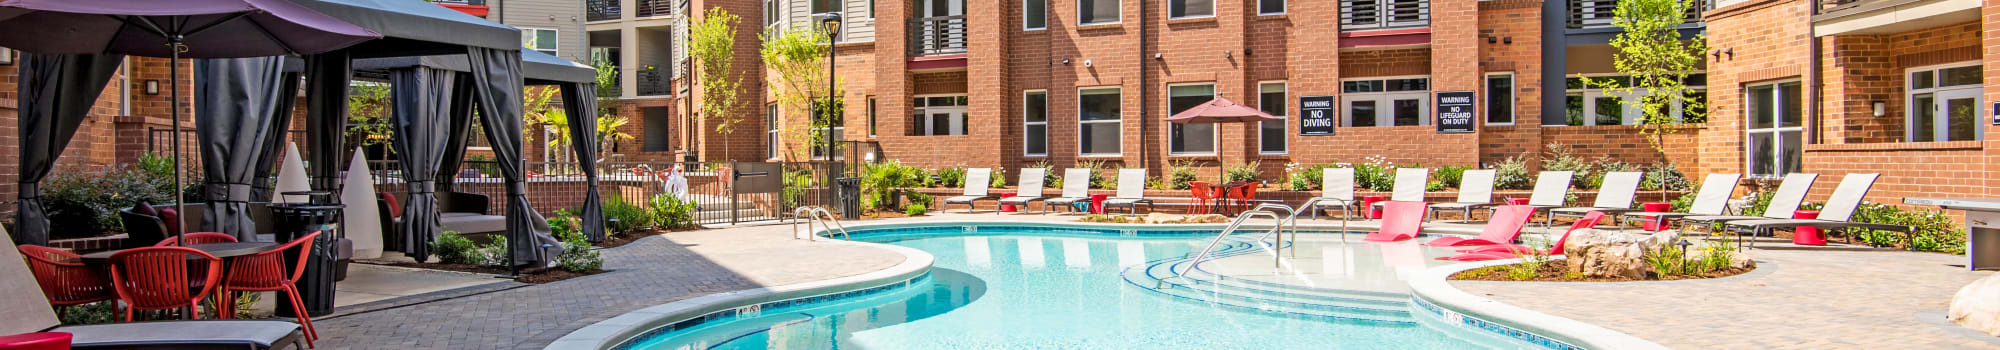 Amenities at Mercury NoDa in Charlotte, North Carolina